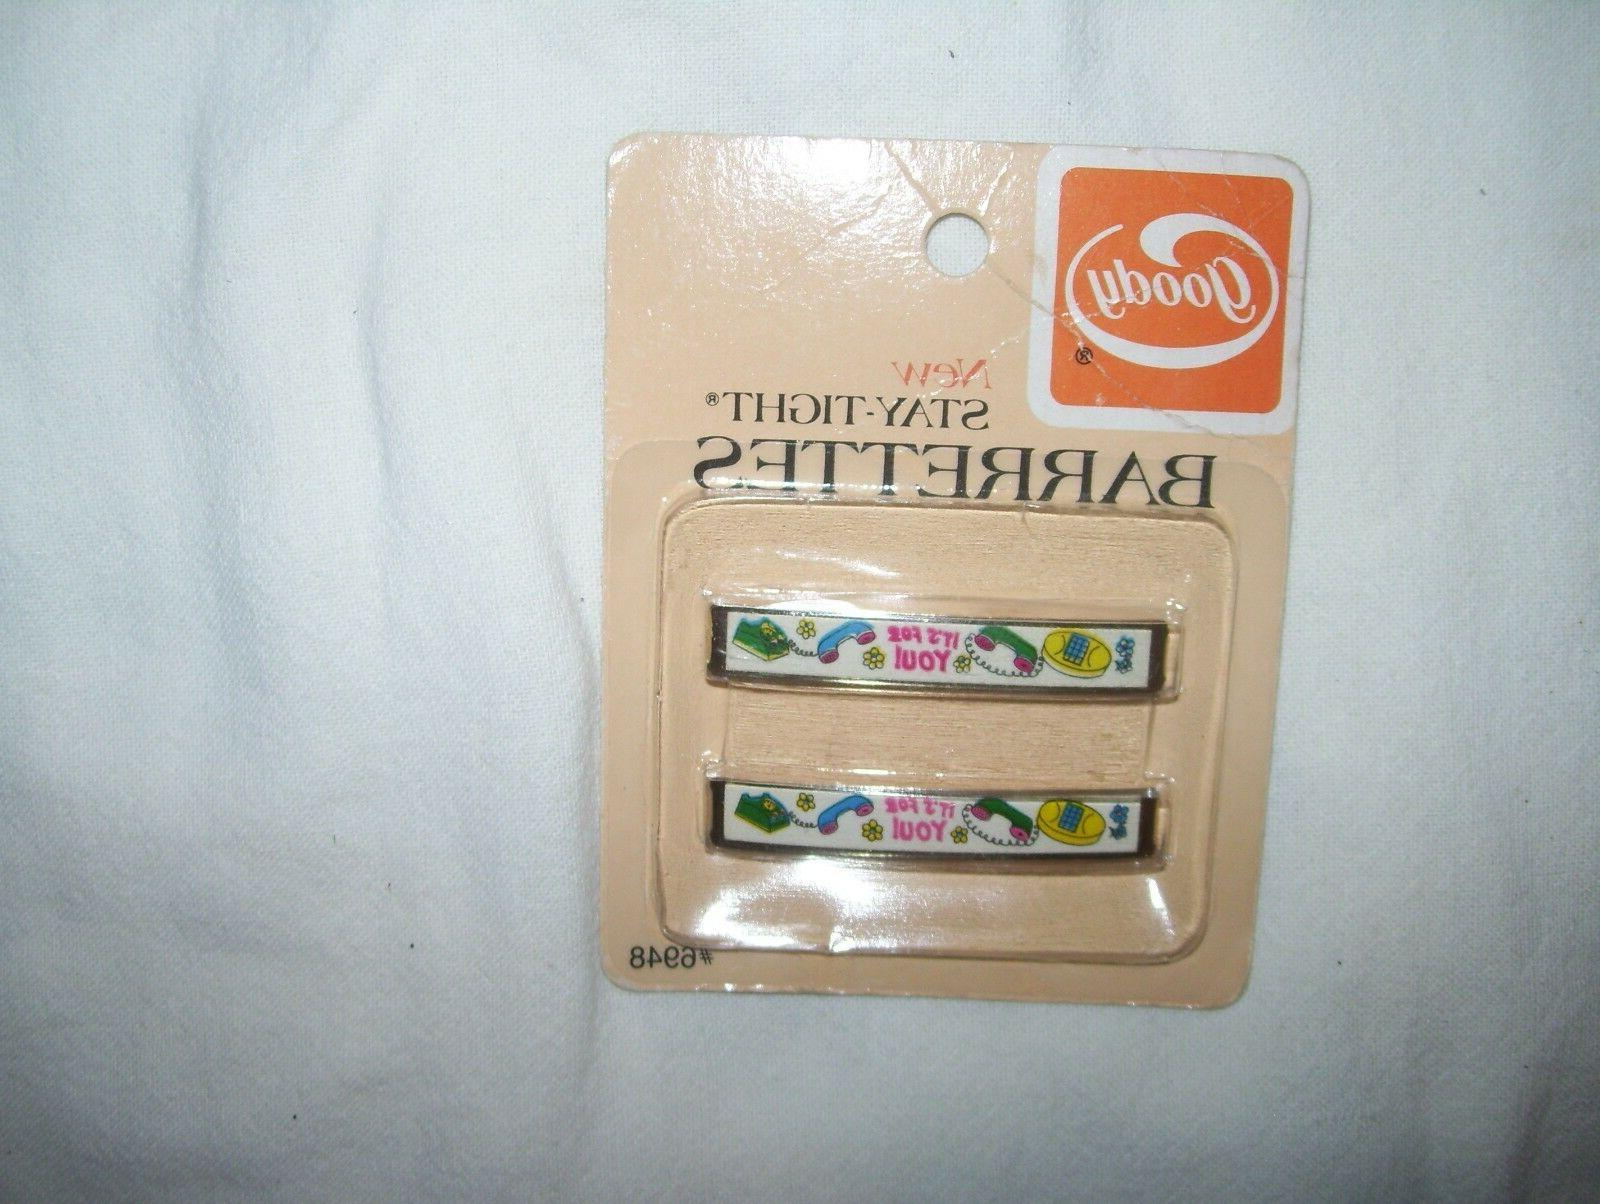 Vintage Barrettes Pack of - For ! Phone Telephone